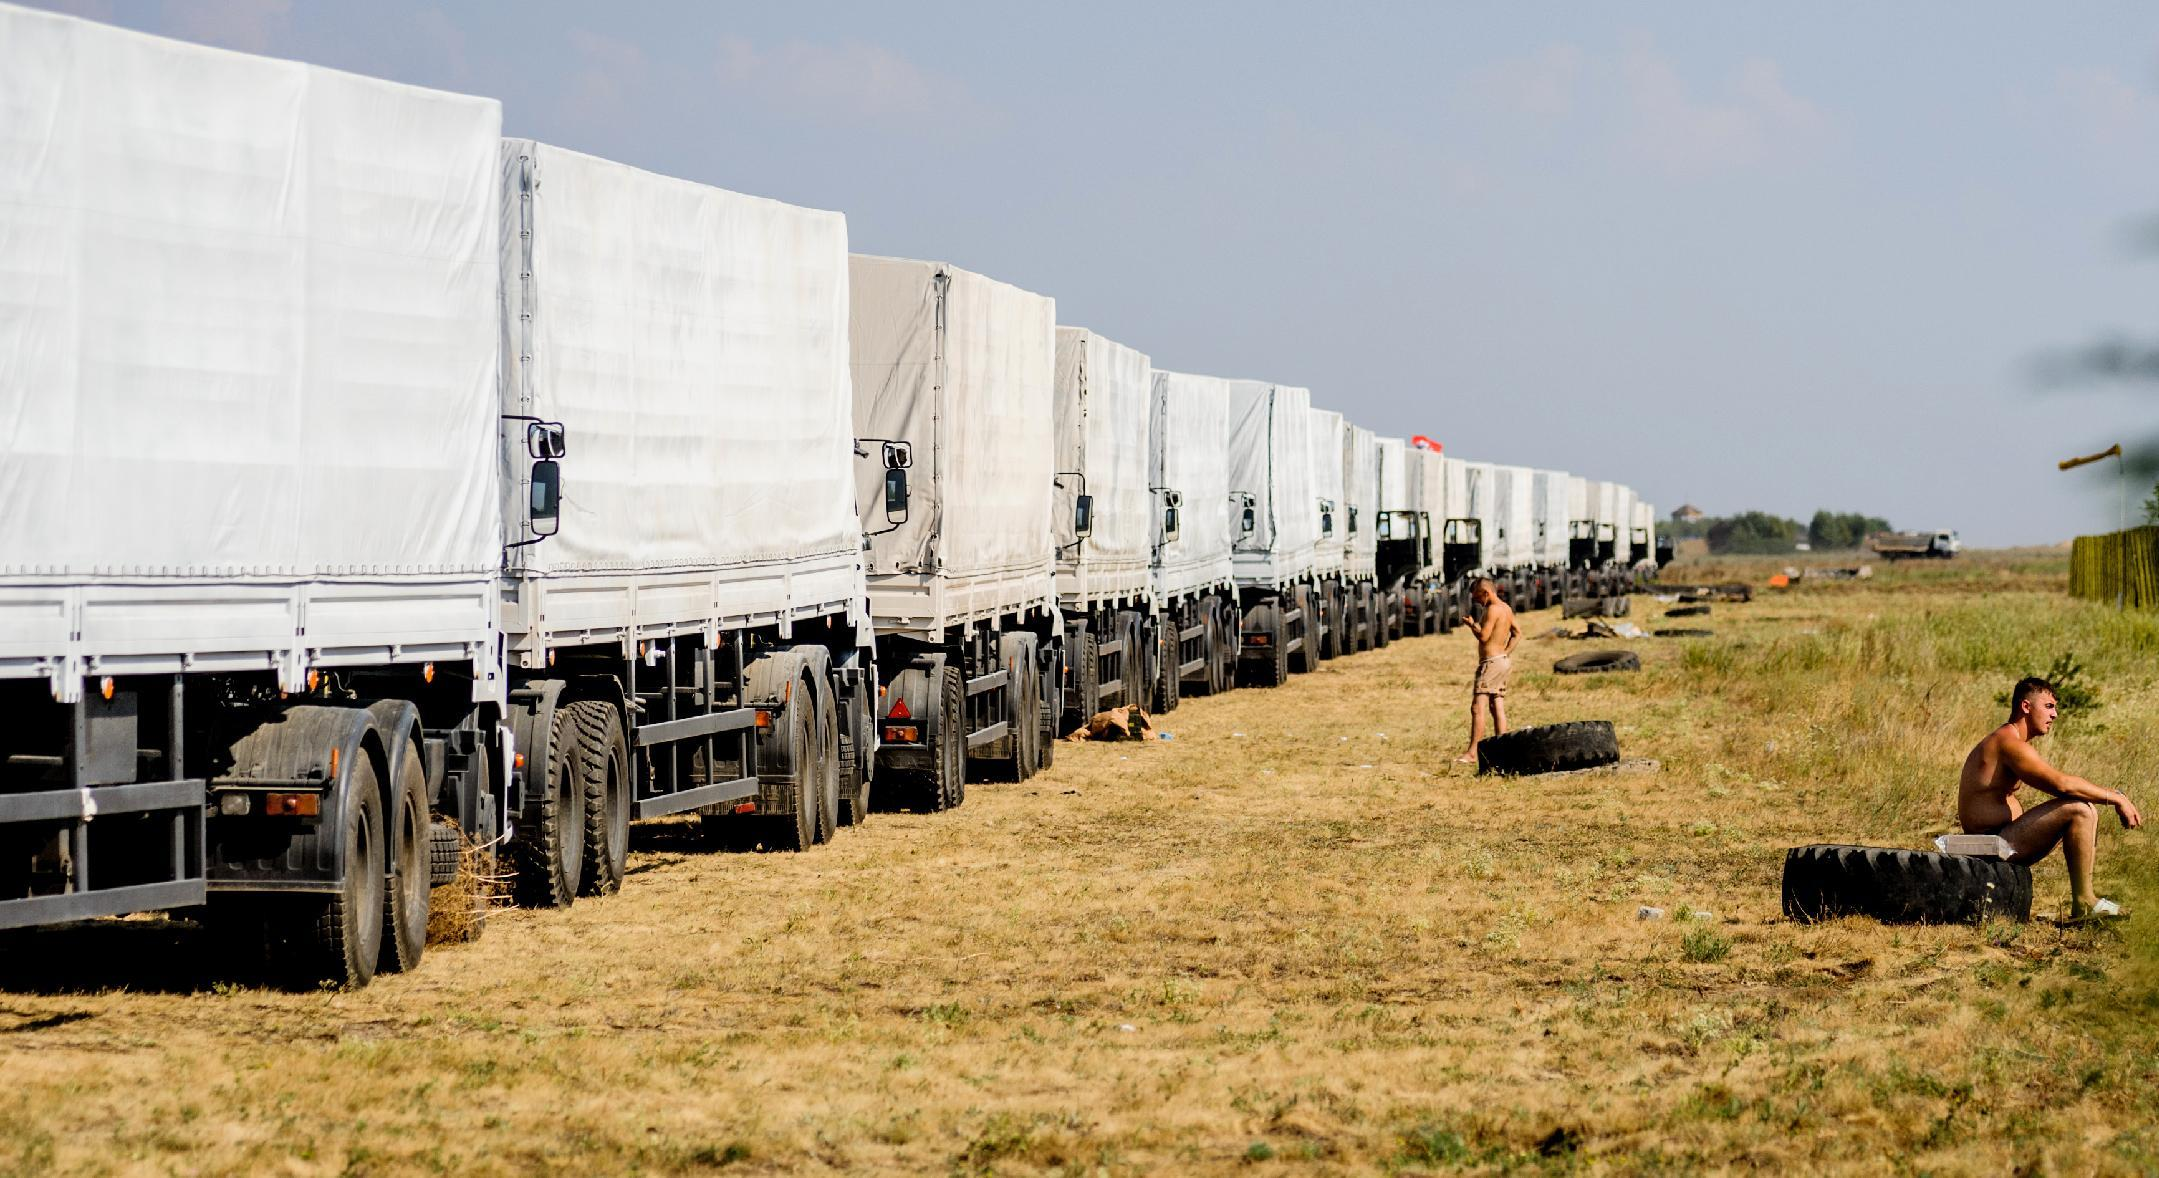 A Russian humanitarian convoy waits outside Voronezh, some 400 km outside Moscow, on August 13, 2014 (AFP Photo/Vladimir Baryshev)